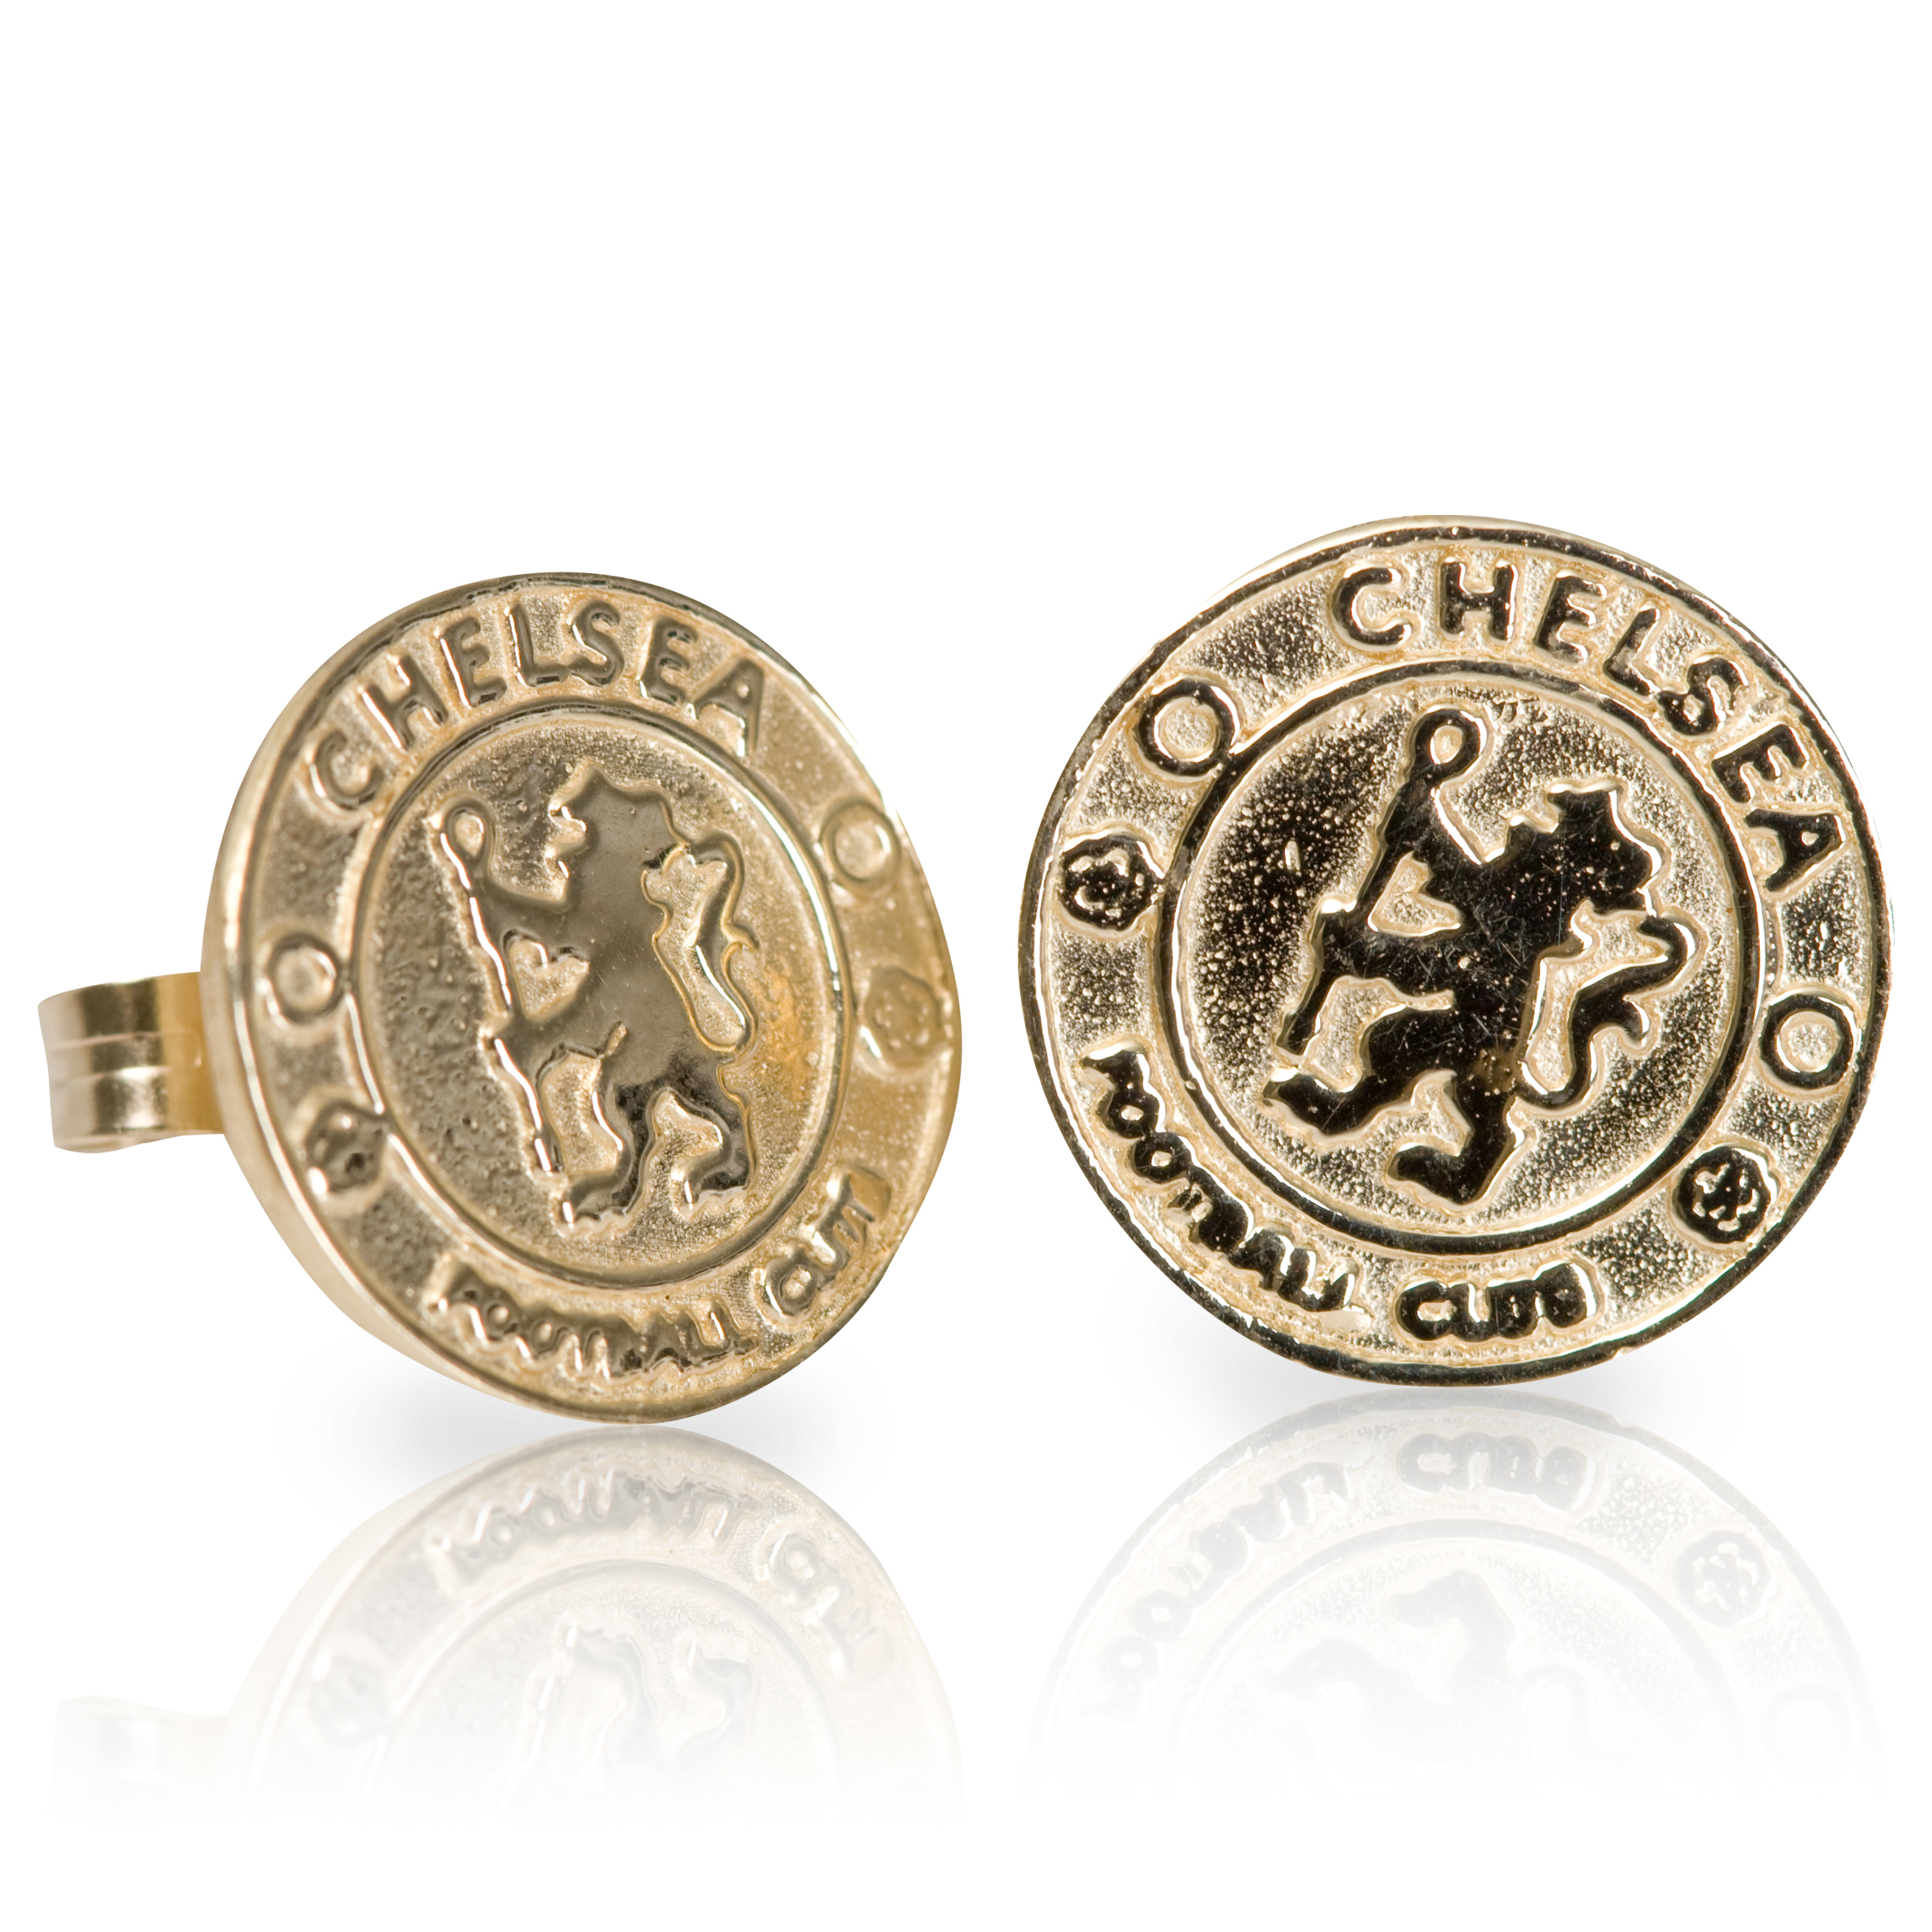 Chelsea Crest Stud Earrings 9ct Gold - Pair